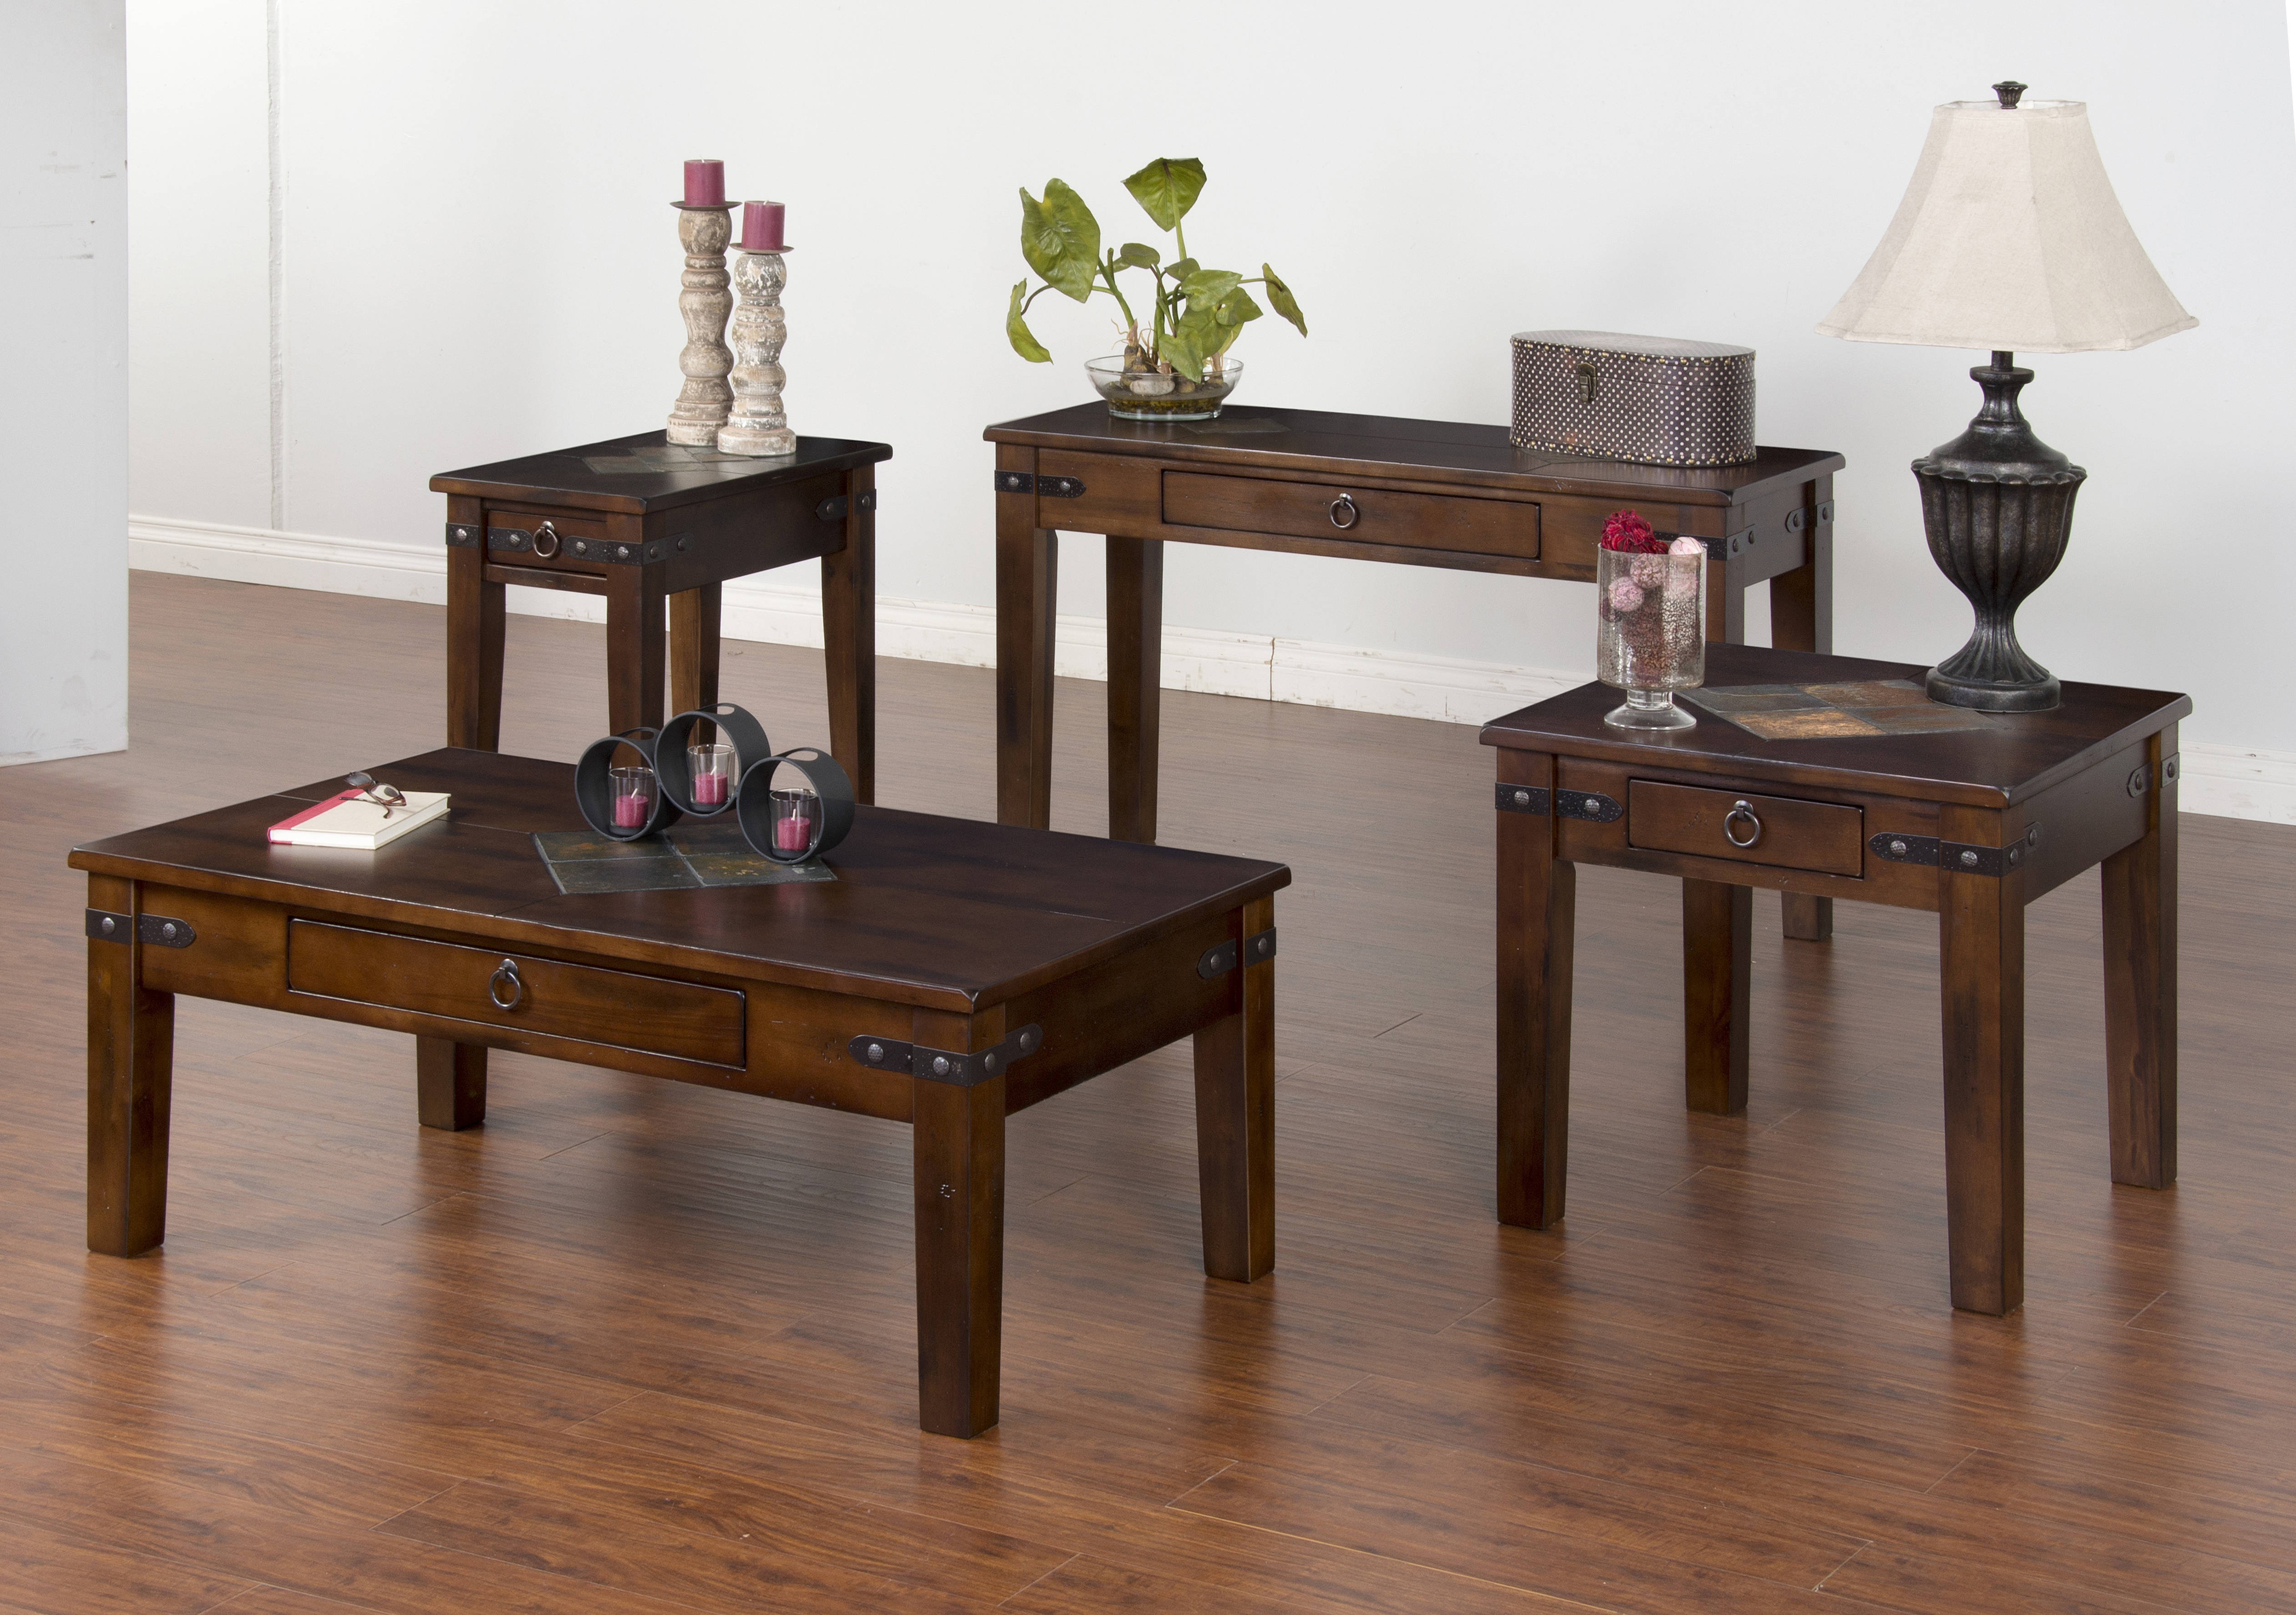 Santa Fe Traditional Dark Chocolate Wood Storage Coffee Table Set Occasional Tables The